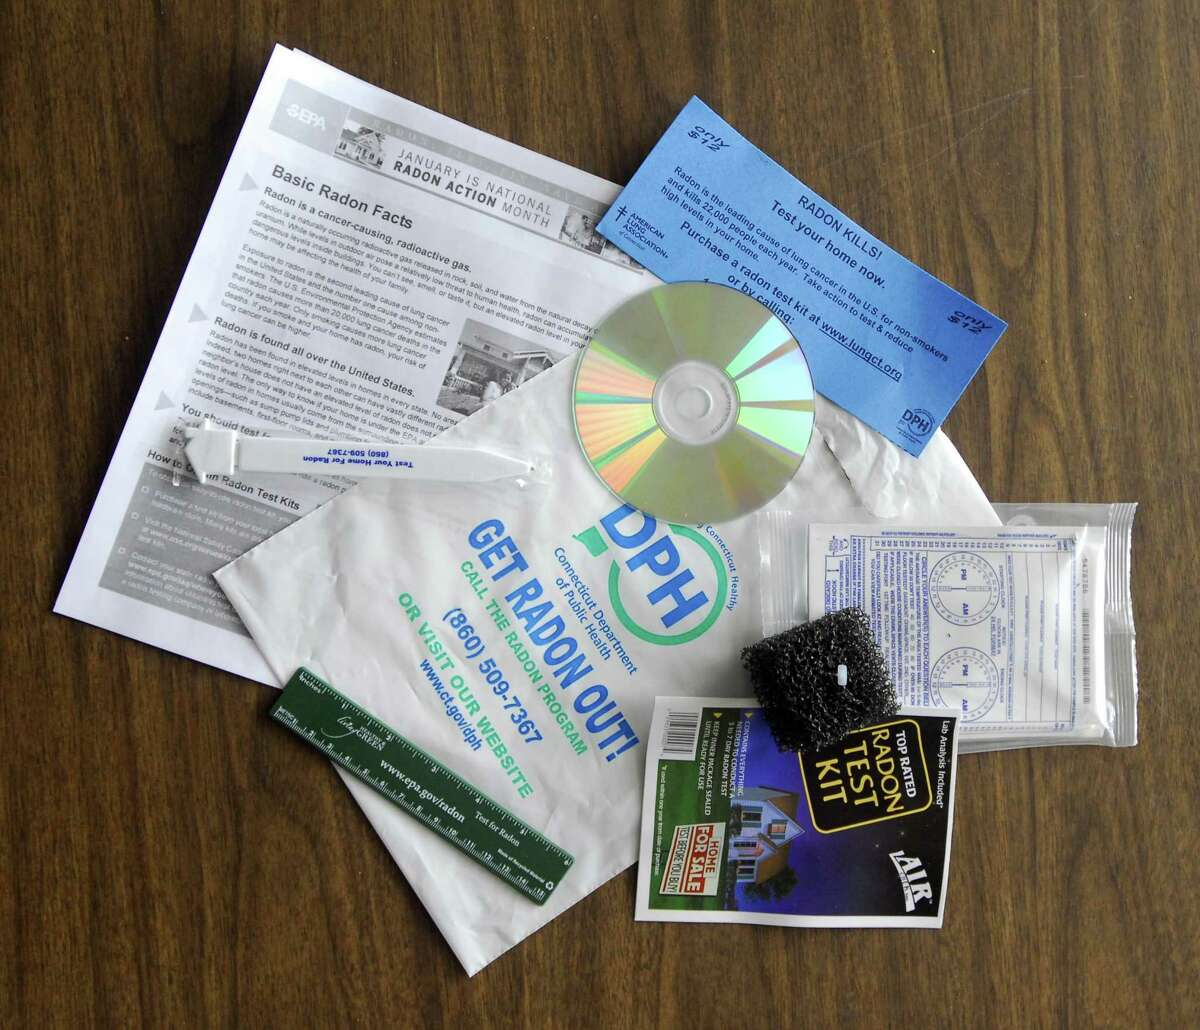 The Middletown Health Department is distributing free radon home testing kits during January, which is National Radon Action Month.